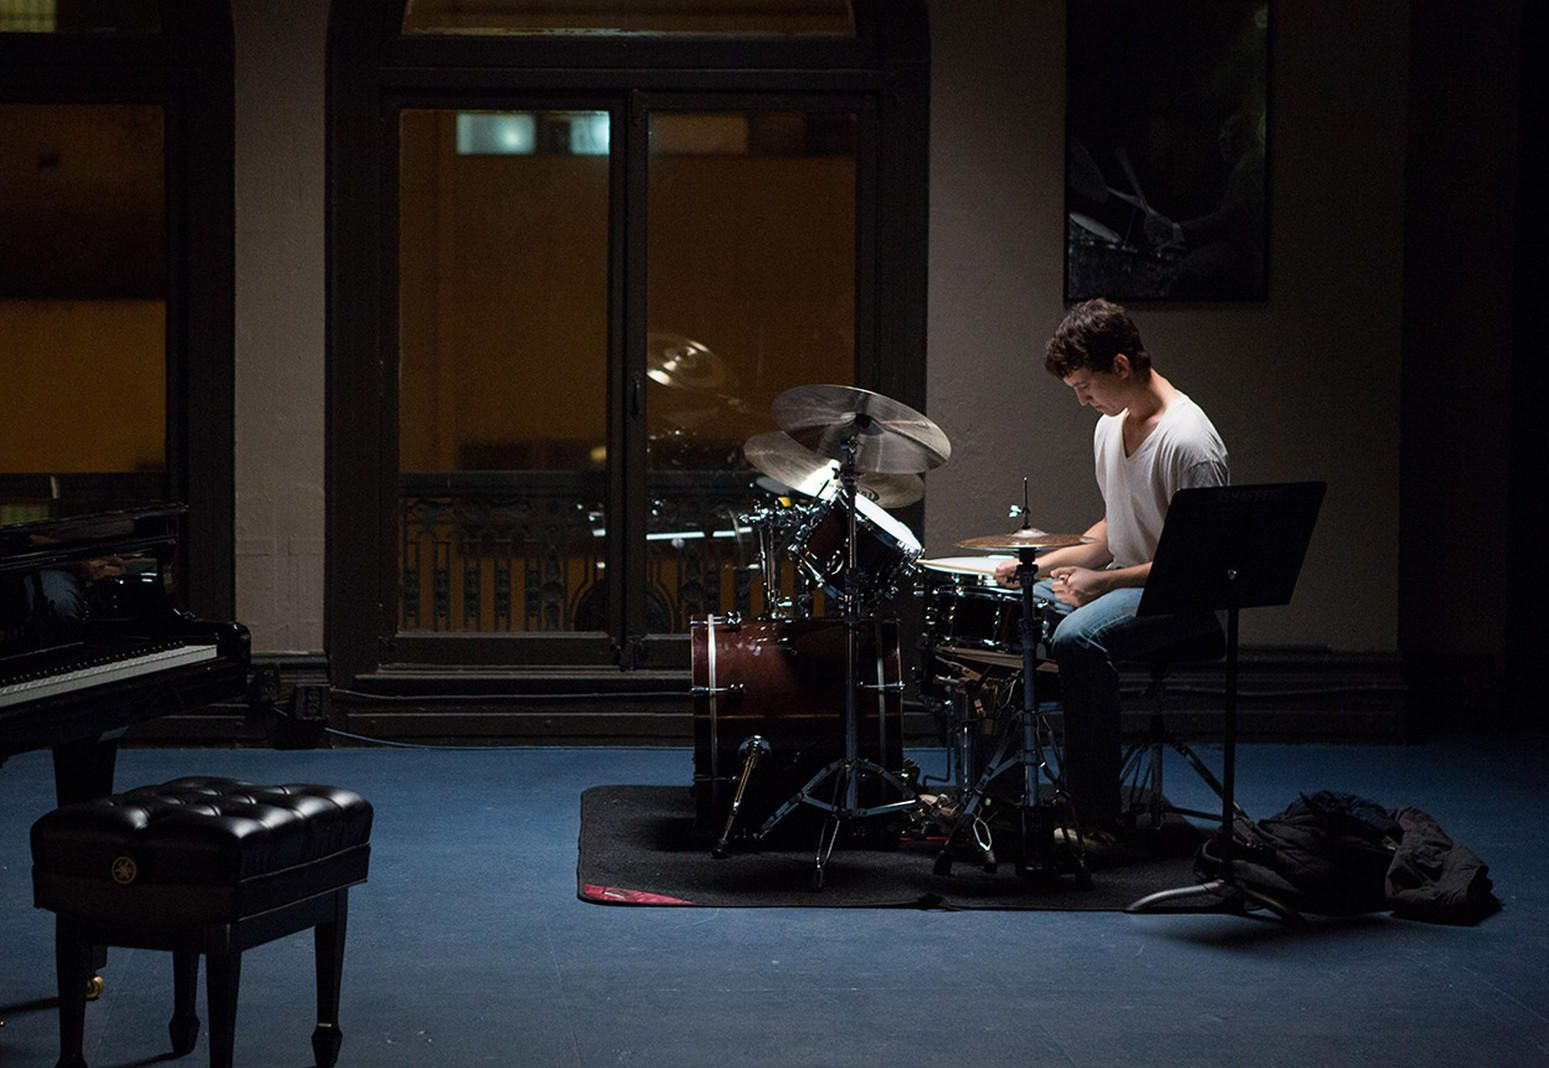 Miles Teller as Andrew Neyman practicing his drums alone